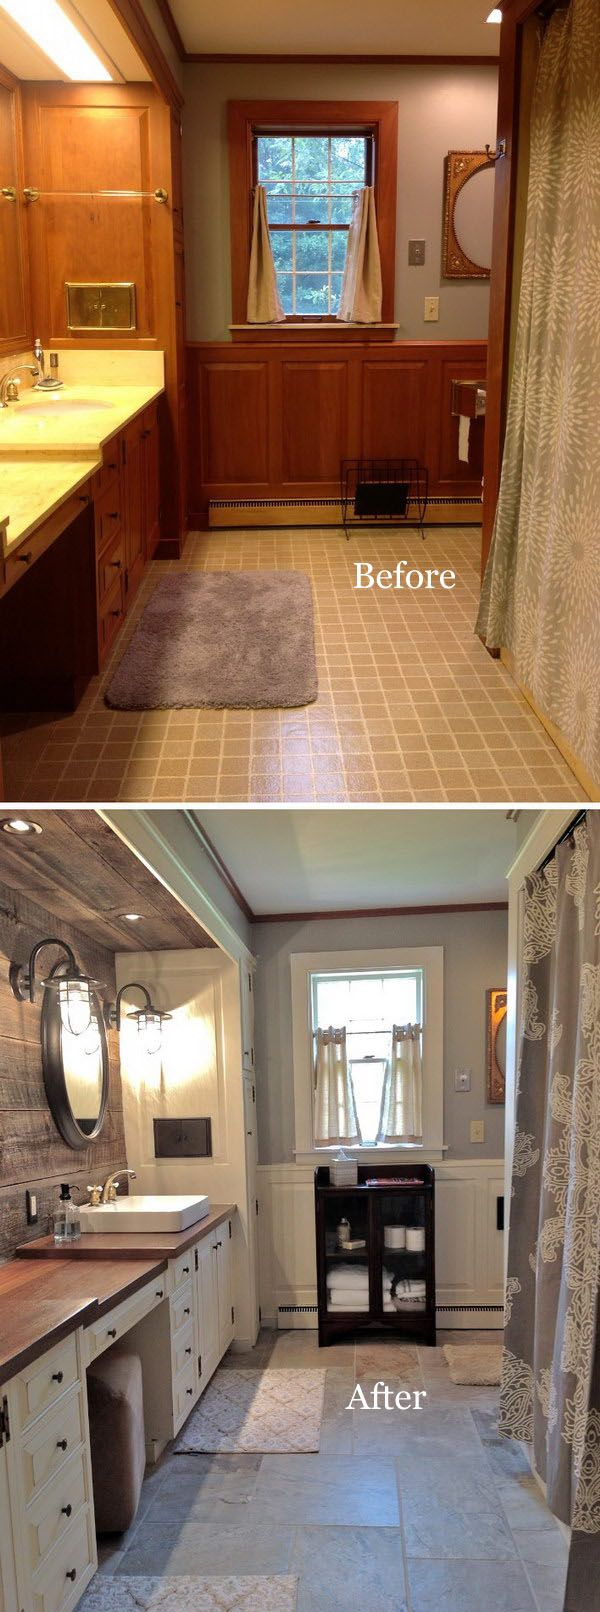 Bathroom Remodeling Pictures top 25+ best bathroom remodel pictures ideas on pinterest